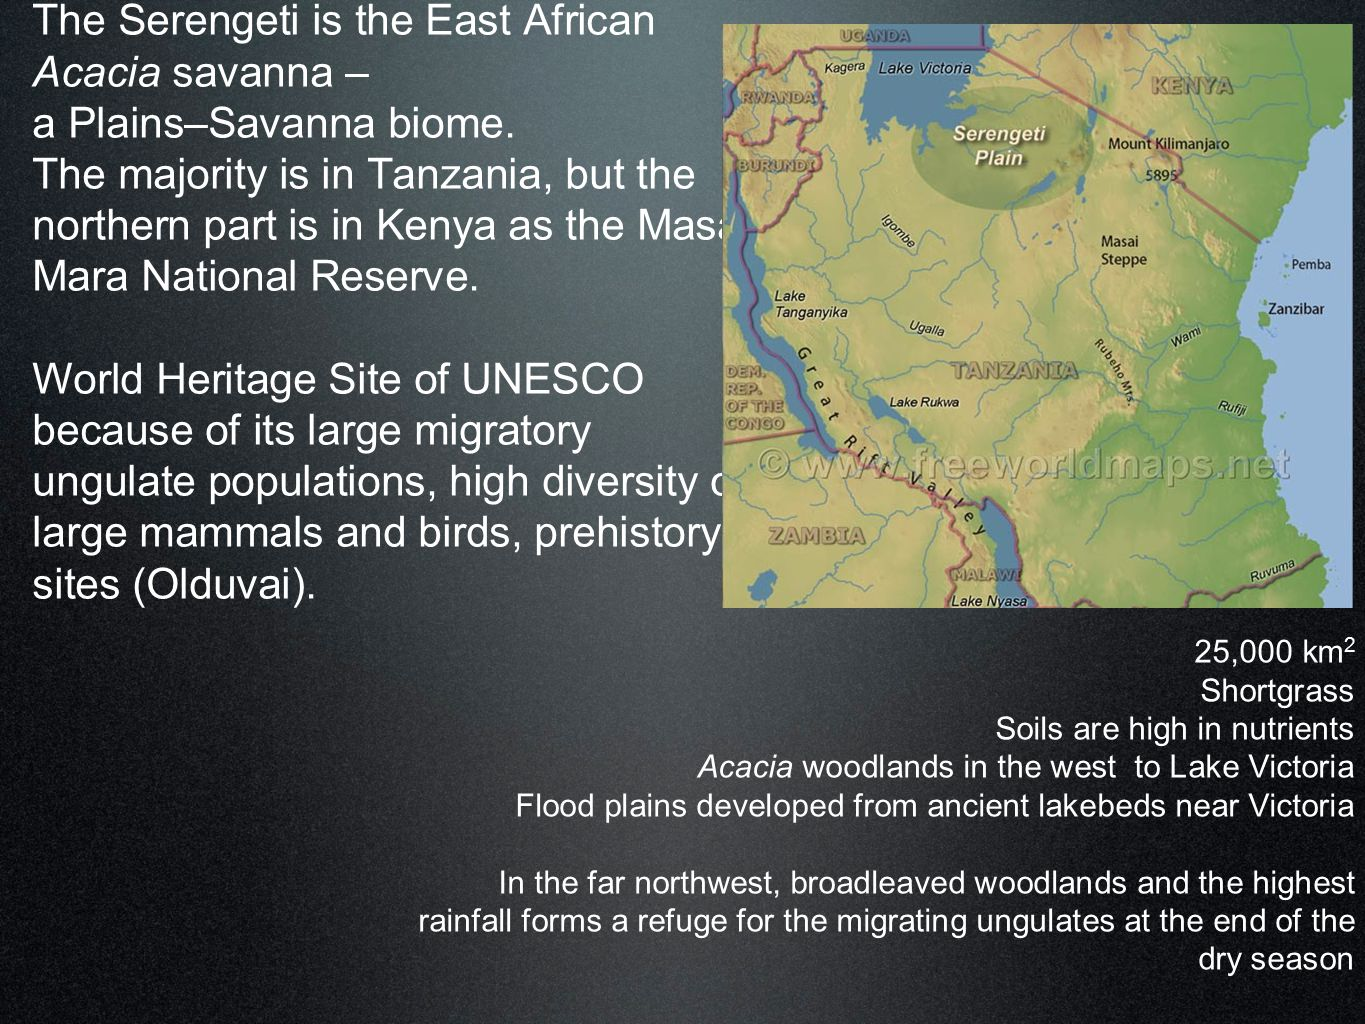 The Serengeti is the East African Acacia savanna – a Plains–Savanna biome. The majority is in Tanzania, but the northern part is in Kenya as the Masai